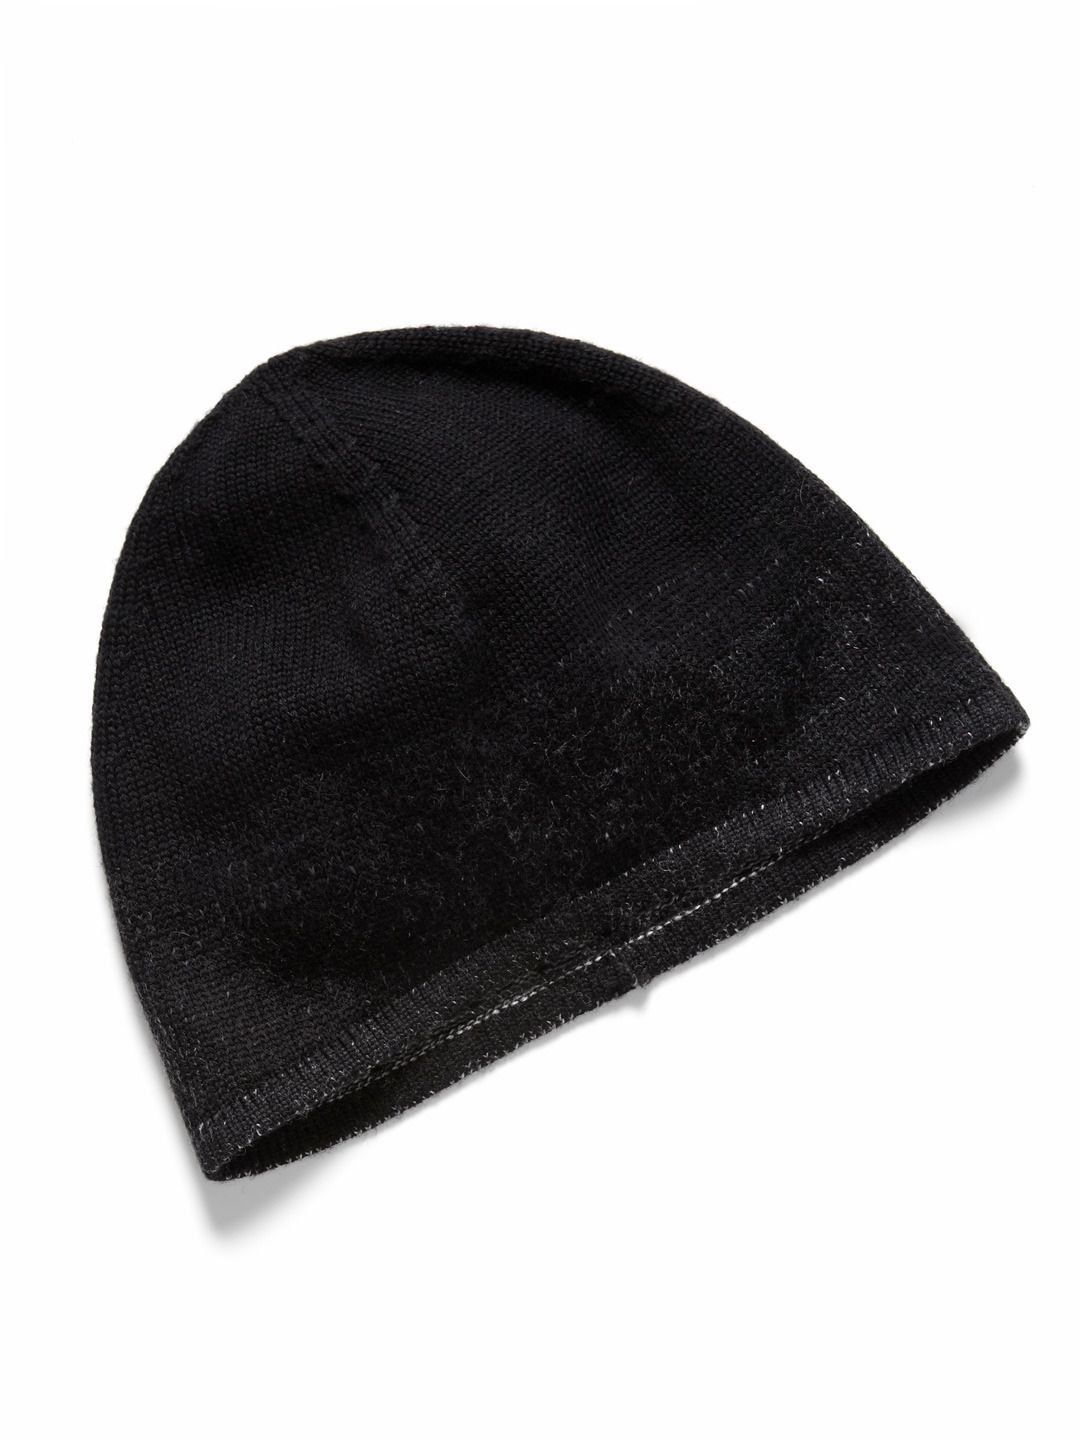 Masen Cashmere and Wool Skull Cap  f7579046c14